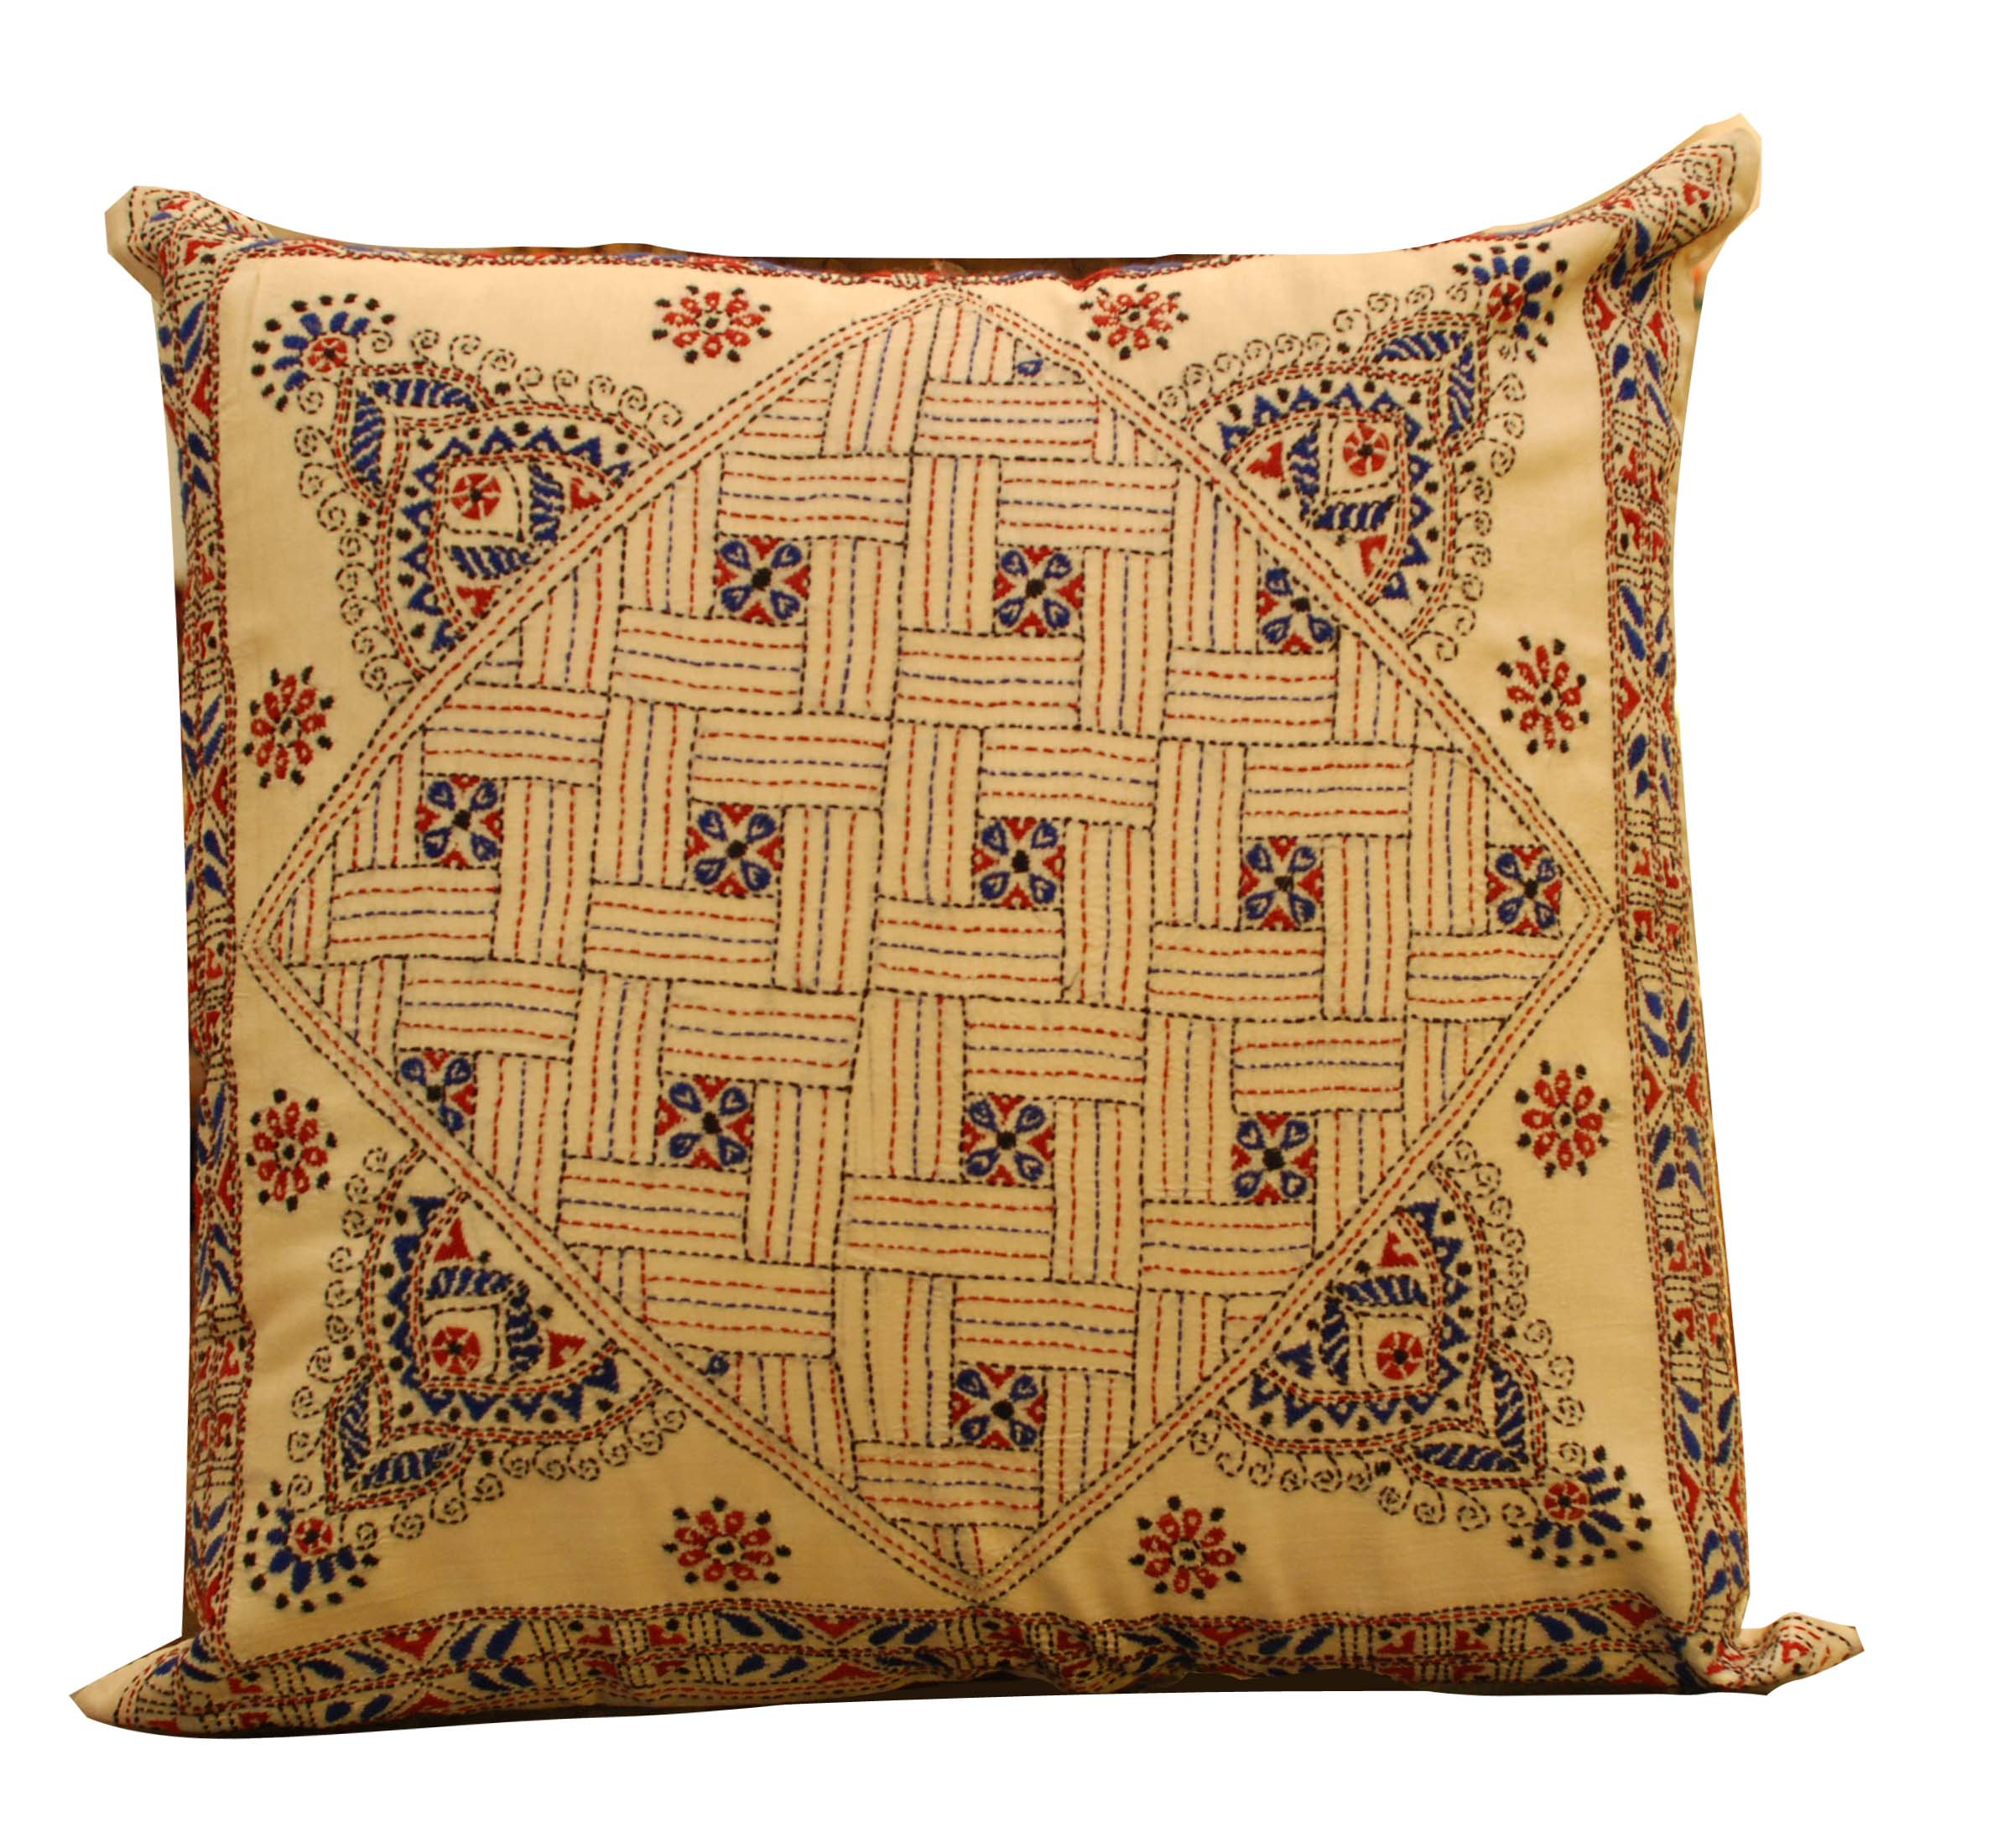 ornina handmade ocu8 embroidered silk cushion